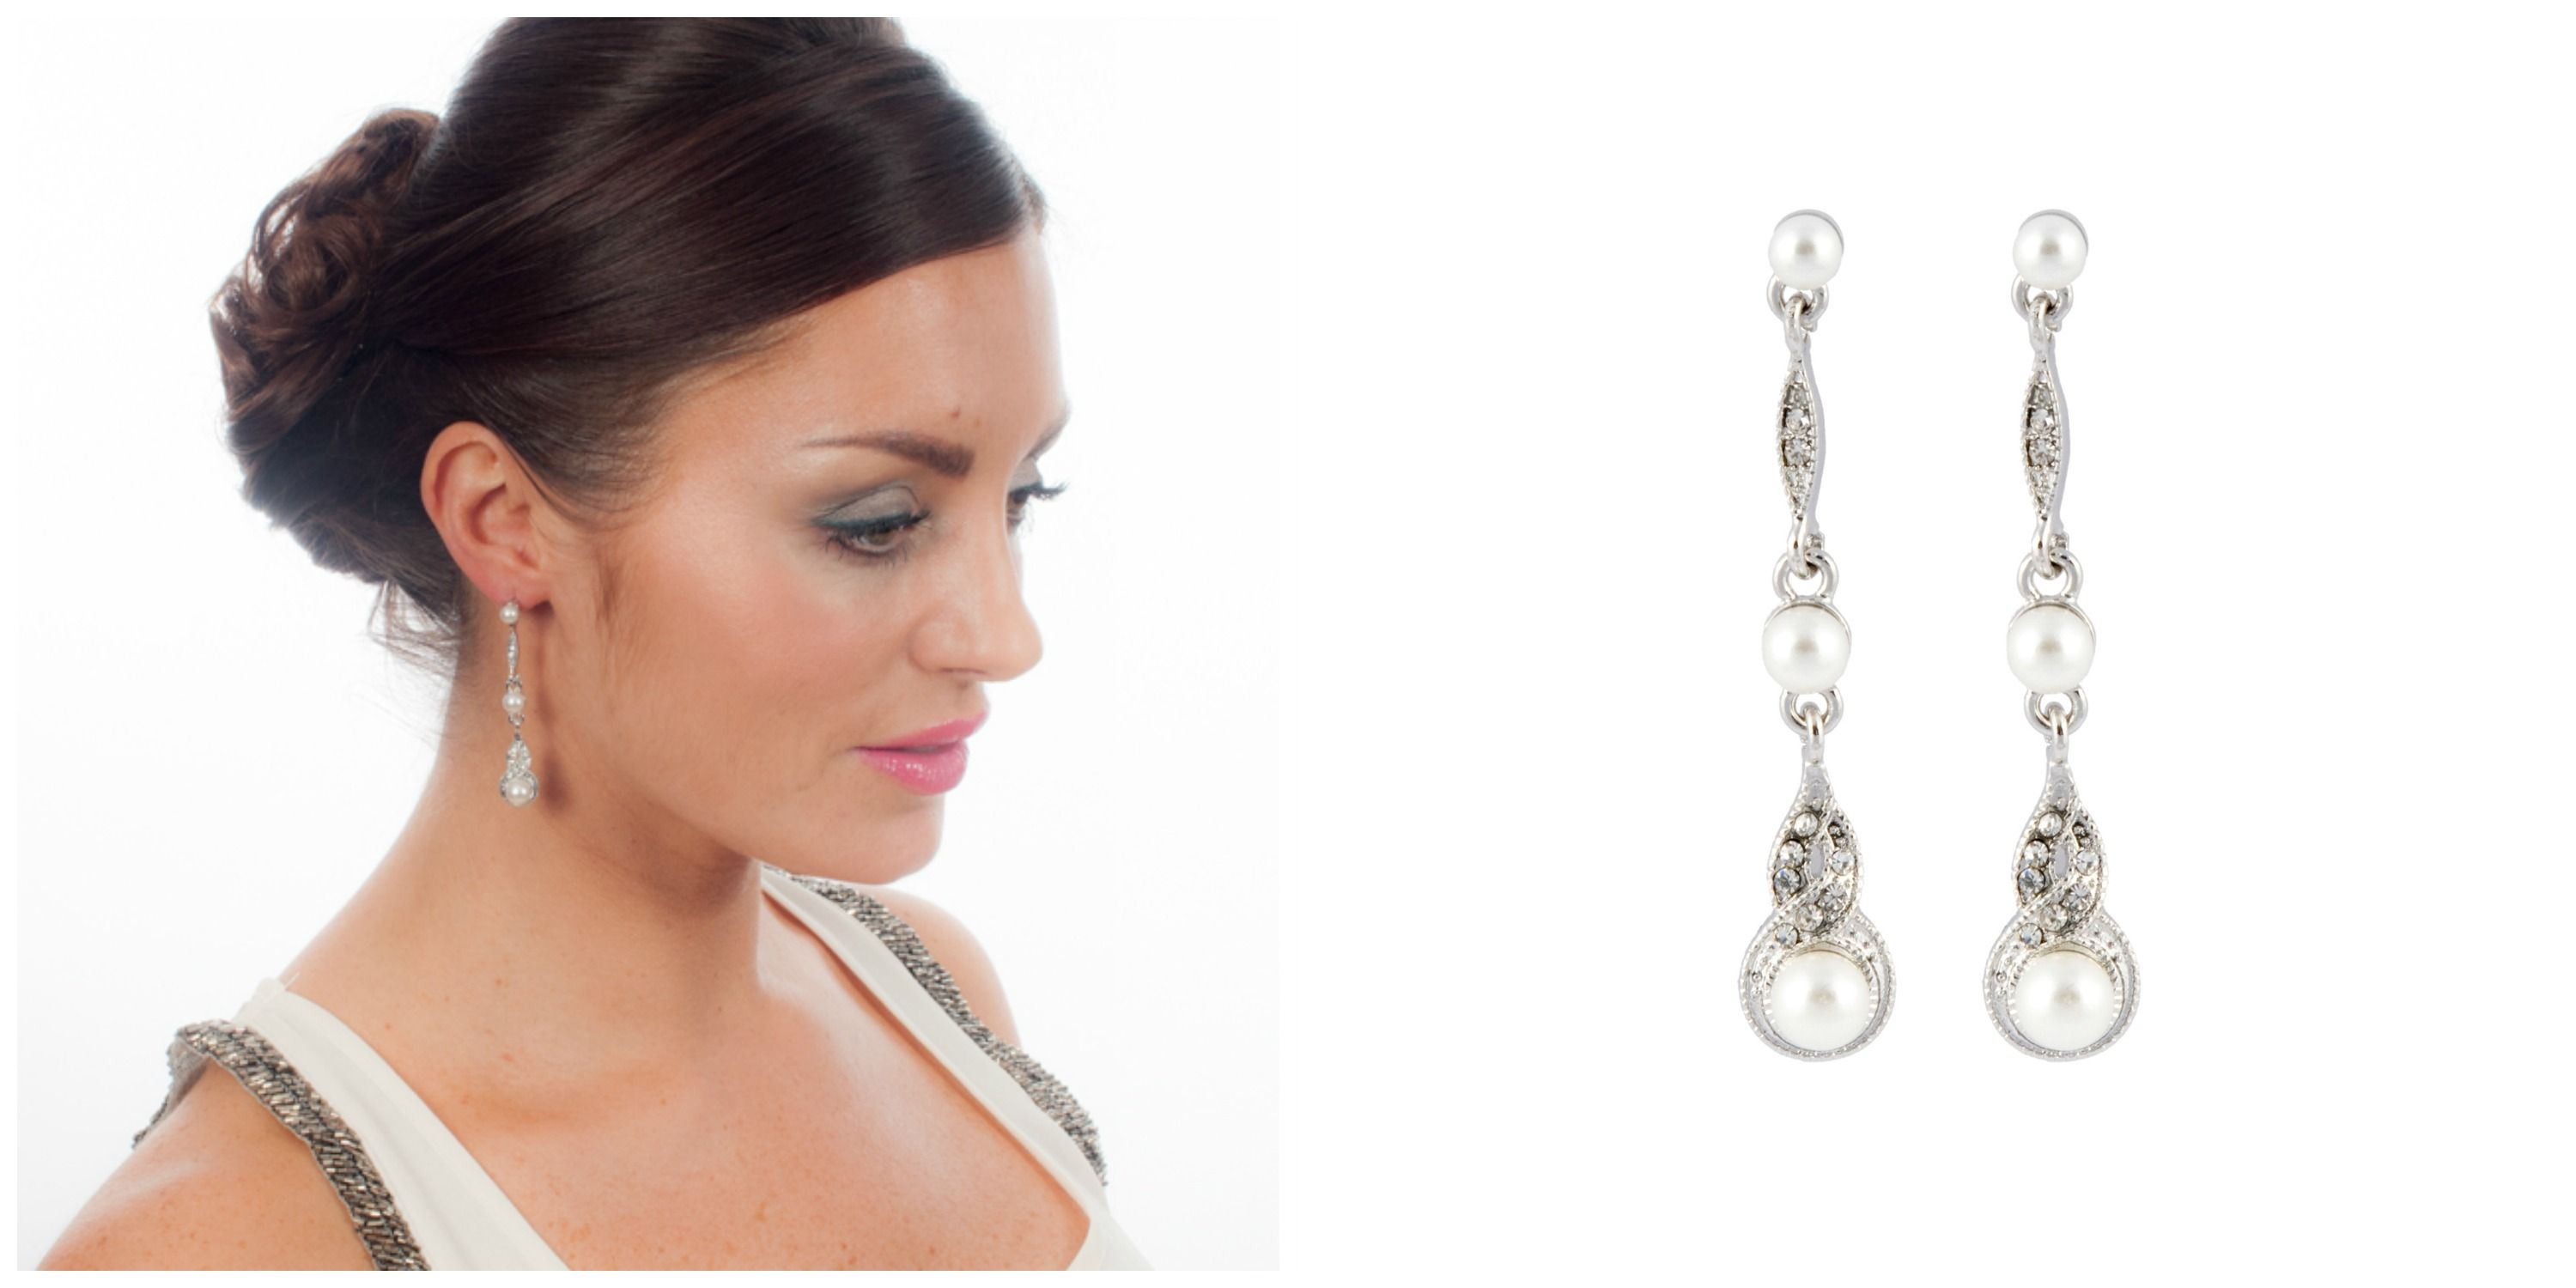 Wedding jewellery the dous and donuts revealed bridal jewellery